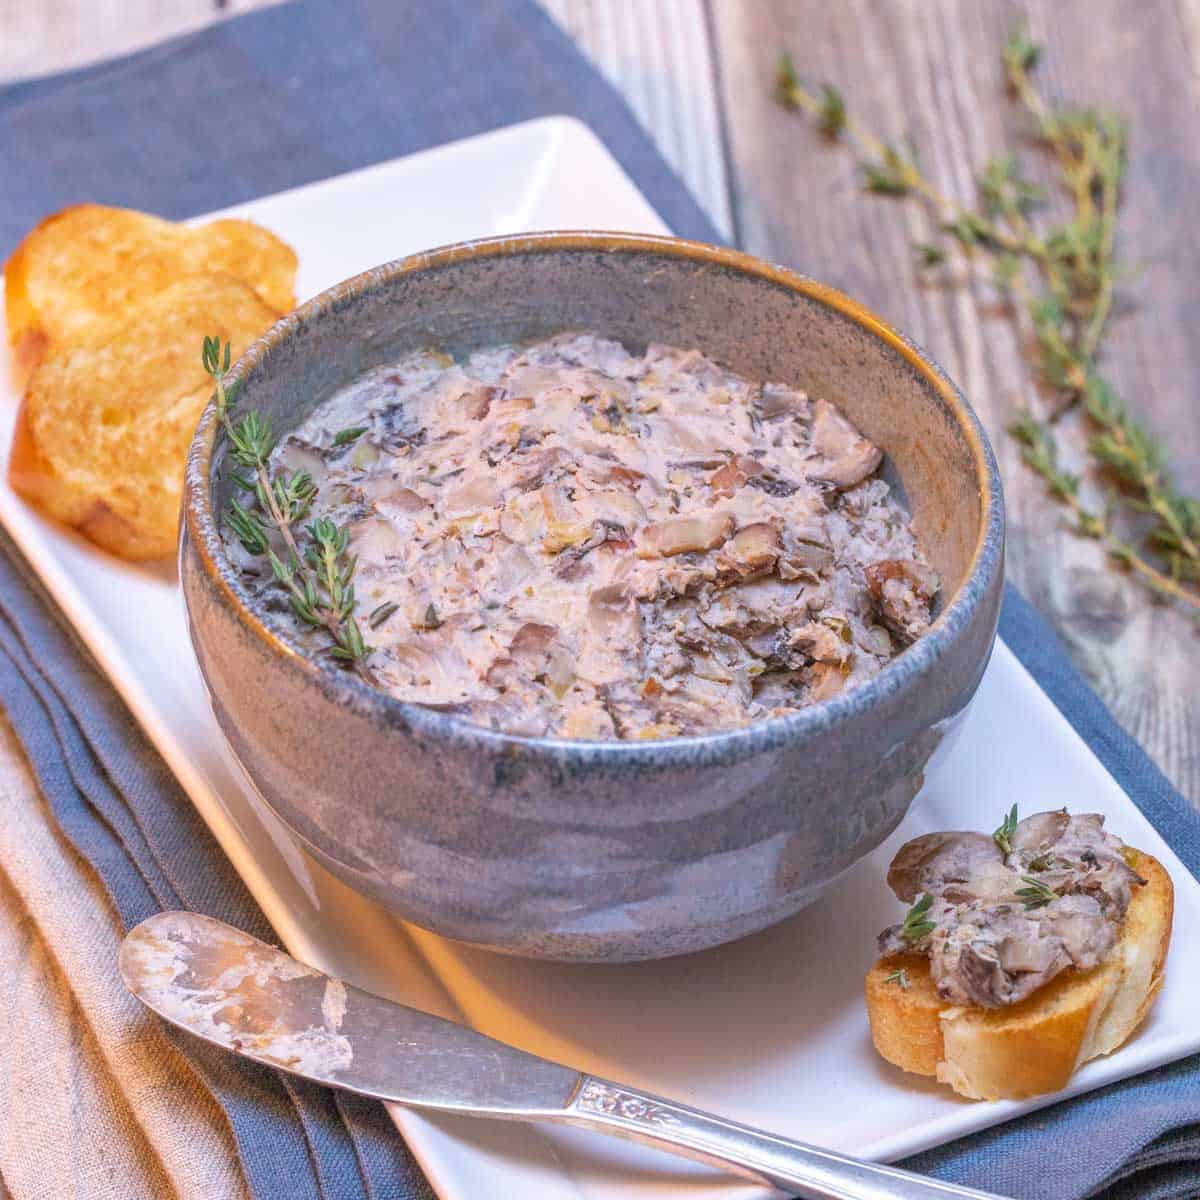 Blue bowl filled with Mushroom Pâté, with toasted baguette slices on the side